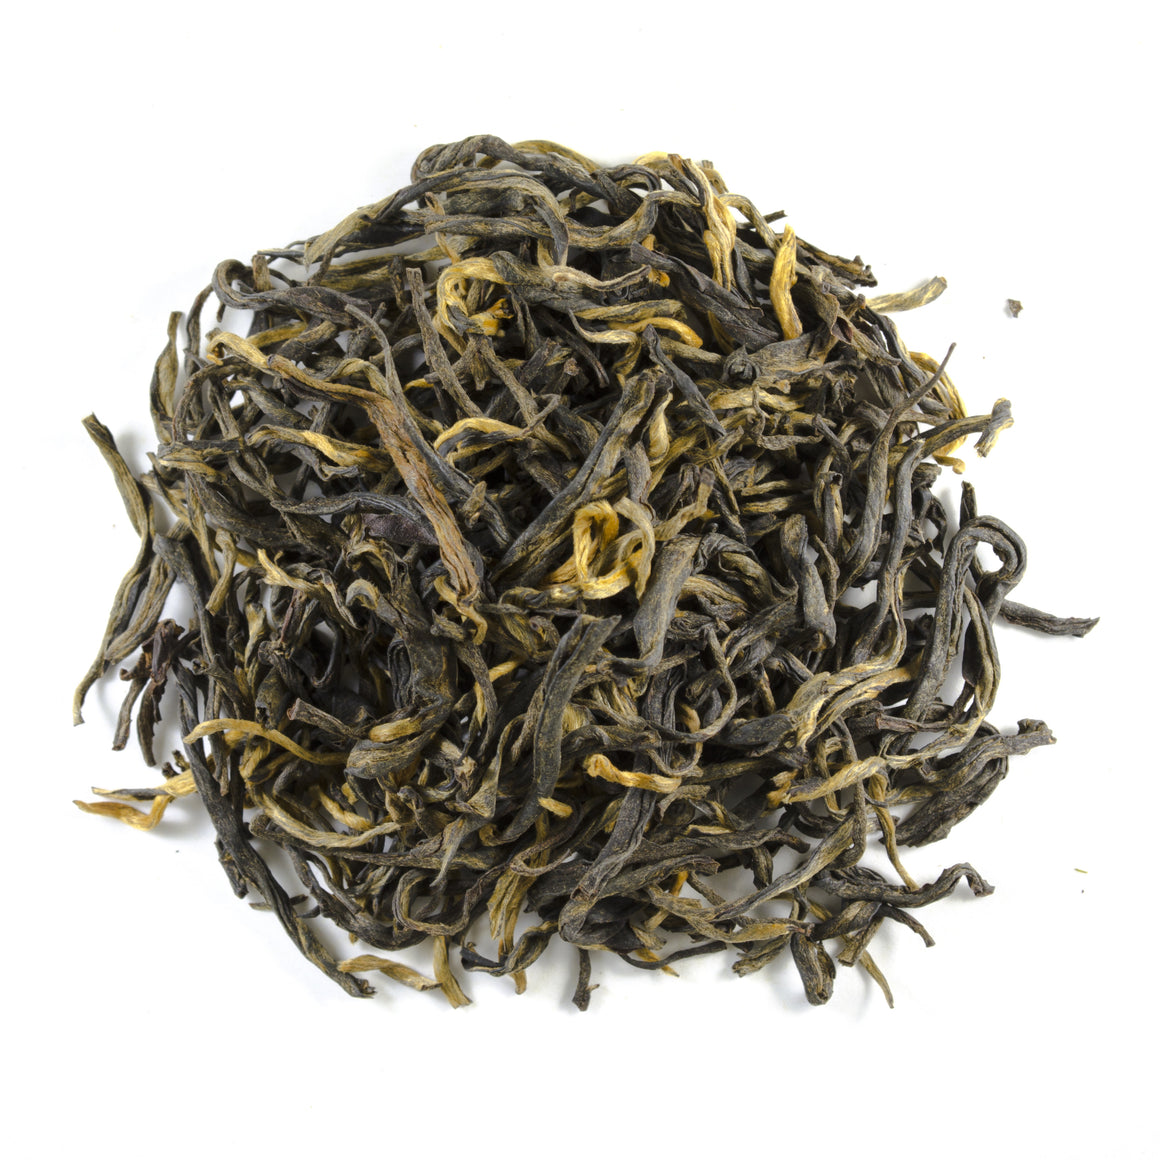 Yunnan Mao Feng - Todd & Holland Tea Merchants